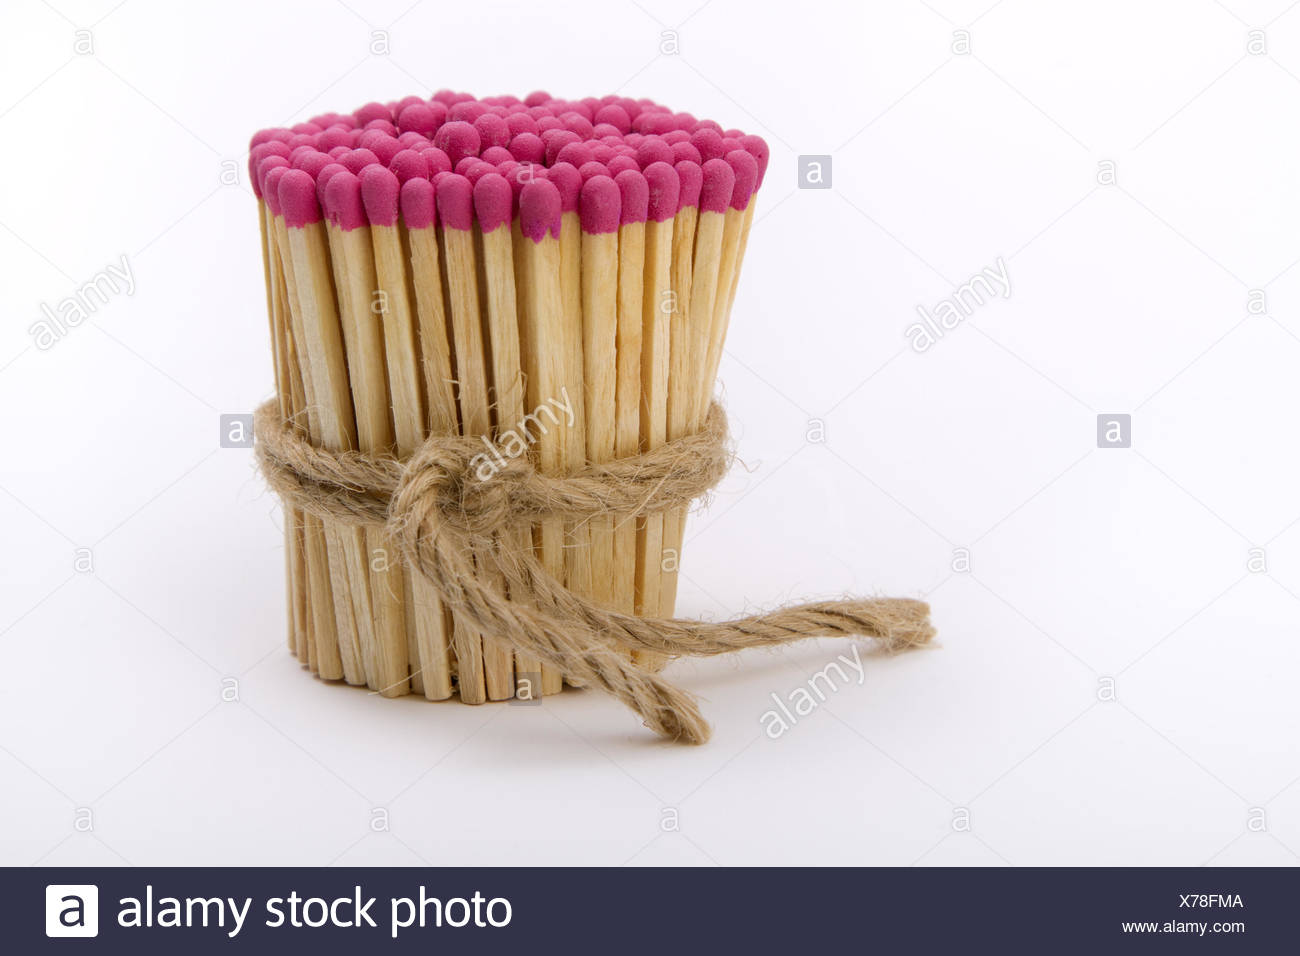 matches gathered into a tight bundle - Stock Image